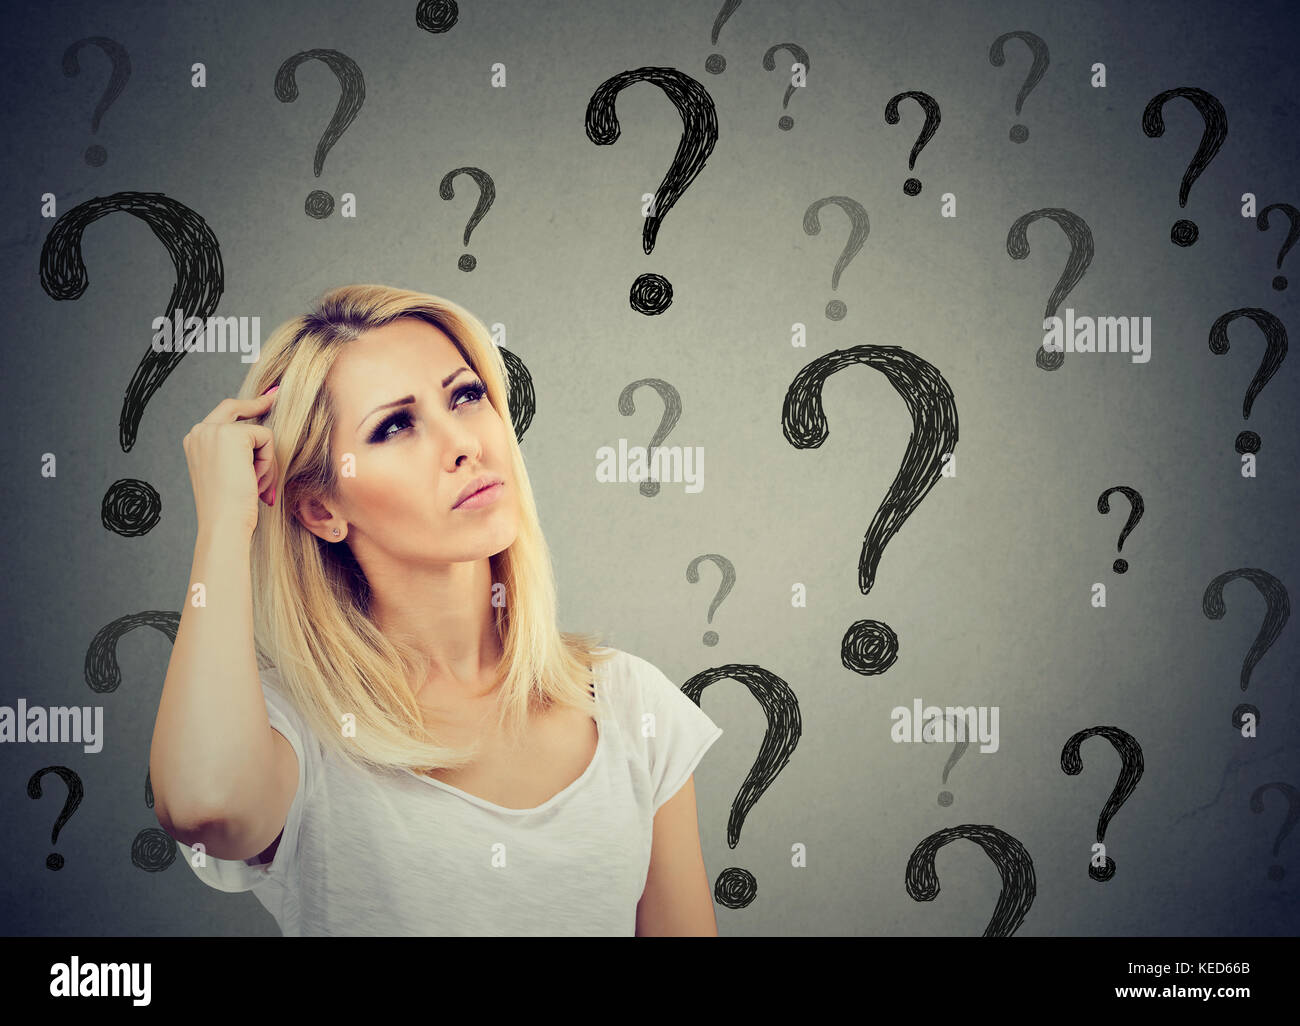 Portrait confused thinking woman bewildered scratching head seeks a solution looking up at many question marks isolated Stock Photo